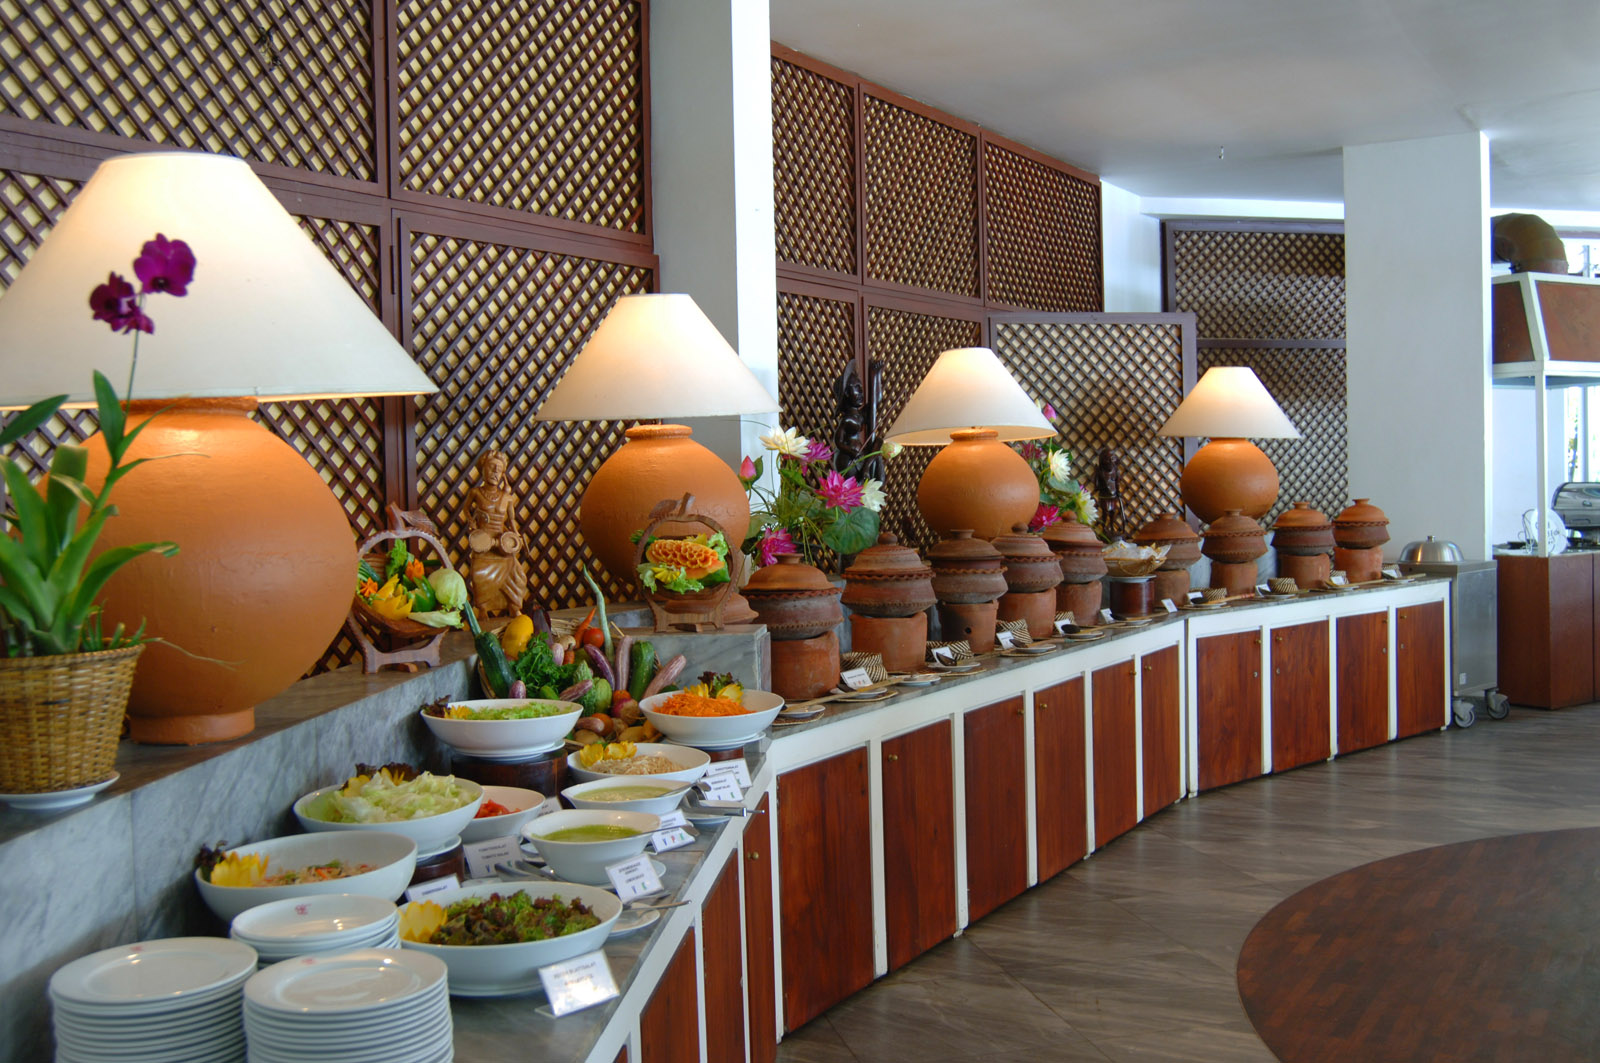 https://www.lankaprincess.com/wp-content/uploads/2014/12/Ayurveda-Restaurant-Lanka-Princess-New-batch-12-51.jpg